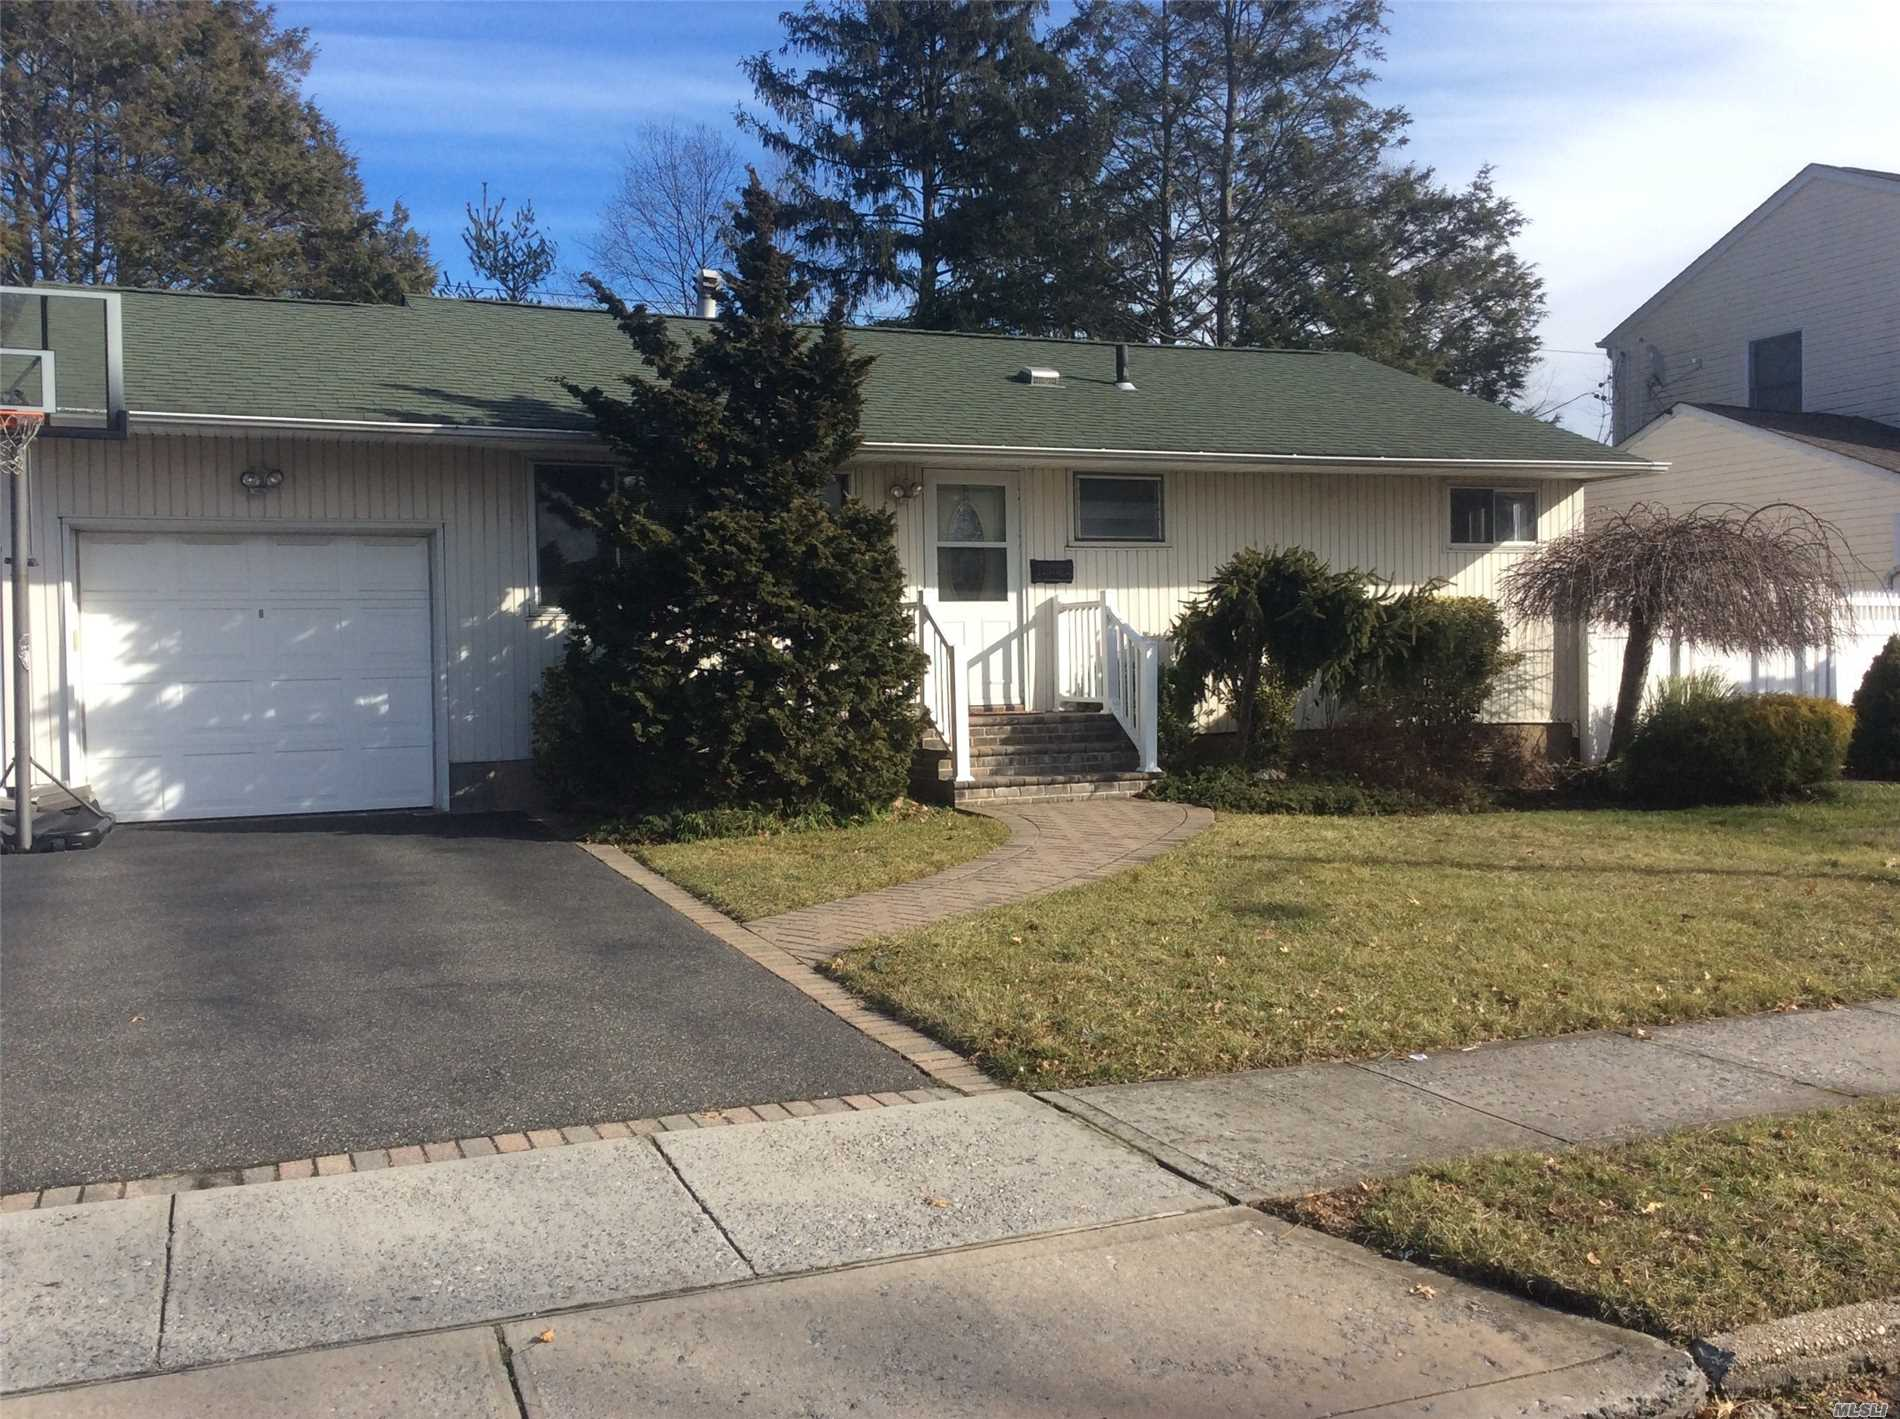 Expanded Ranch, Freshly Painted, Move Right In. Finished Basement With Full Bath, Central A/C, Large Fenced Back Yard, Updated Appliances, Wood Floors, Large Basement With Full Bath, 1 Car Attached Garage. May Consider Dog Or Cat